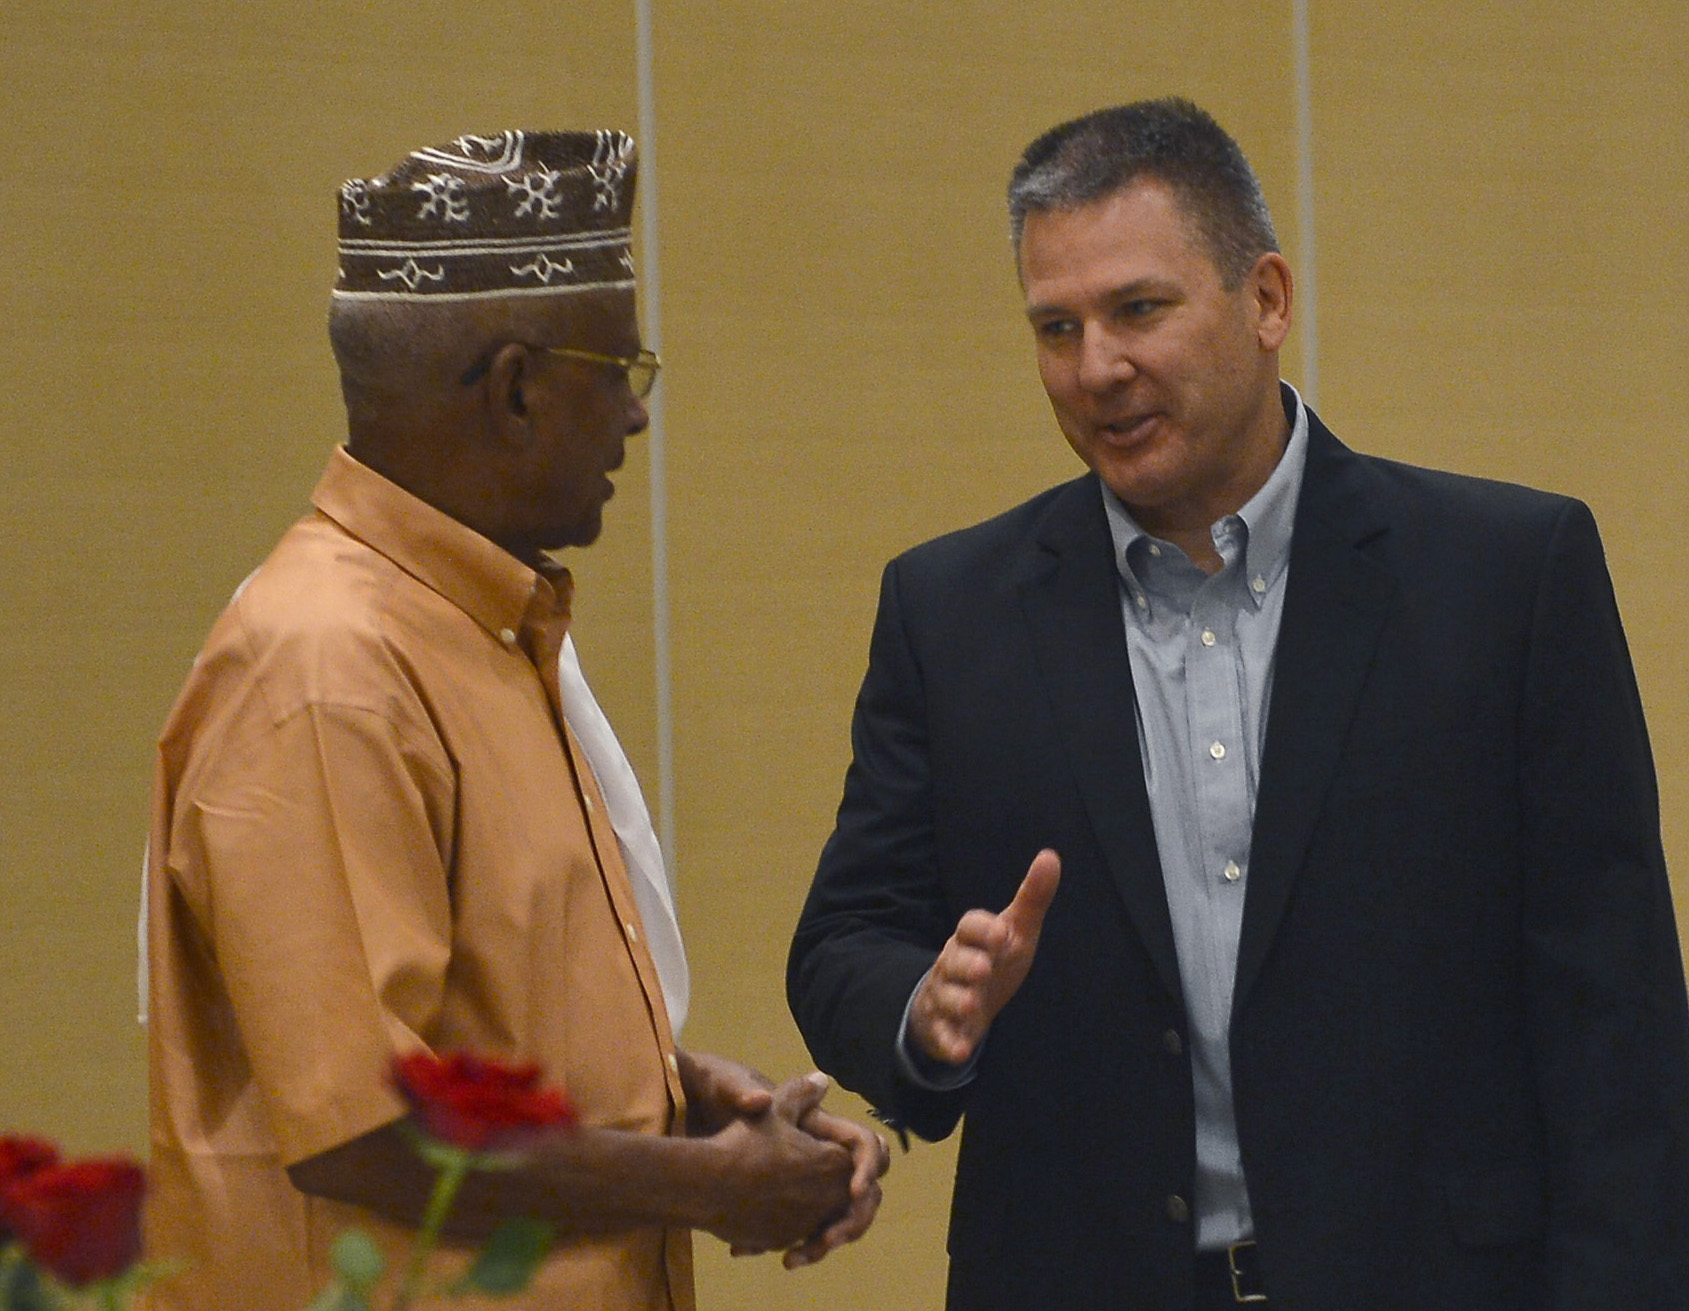 U.S. Army Maj. Gen. Mark Stammer, right, Combined Joint Task Force-Horn of Africa Commander and Gen. Zakaria Cheikh Ibrahim, Djiboutian Armed Forces Chief of Defense, talk during an Iftar dinner at the Kempinski Hotel, Djibouti, June 29, 2015. CJTF-HOA has hosted an annual, fast-breaking Iftar dinner to honor its partner nation's Ramadan since 2006. (U.S. Air Force photo by Senior Airman Nesha Humes)